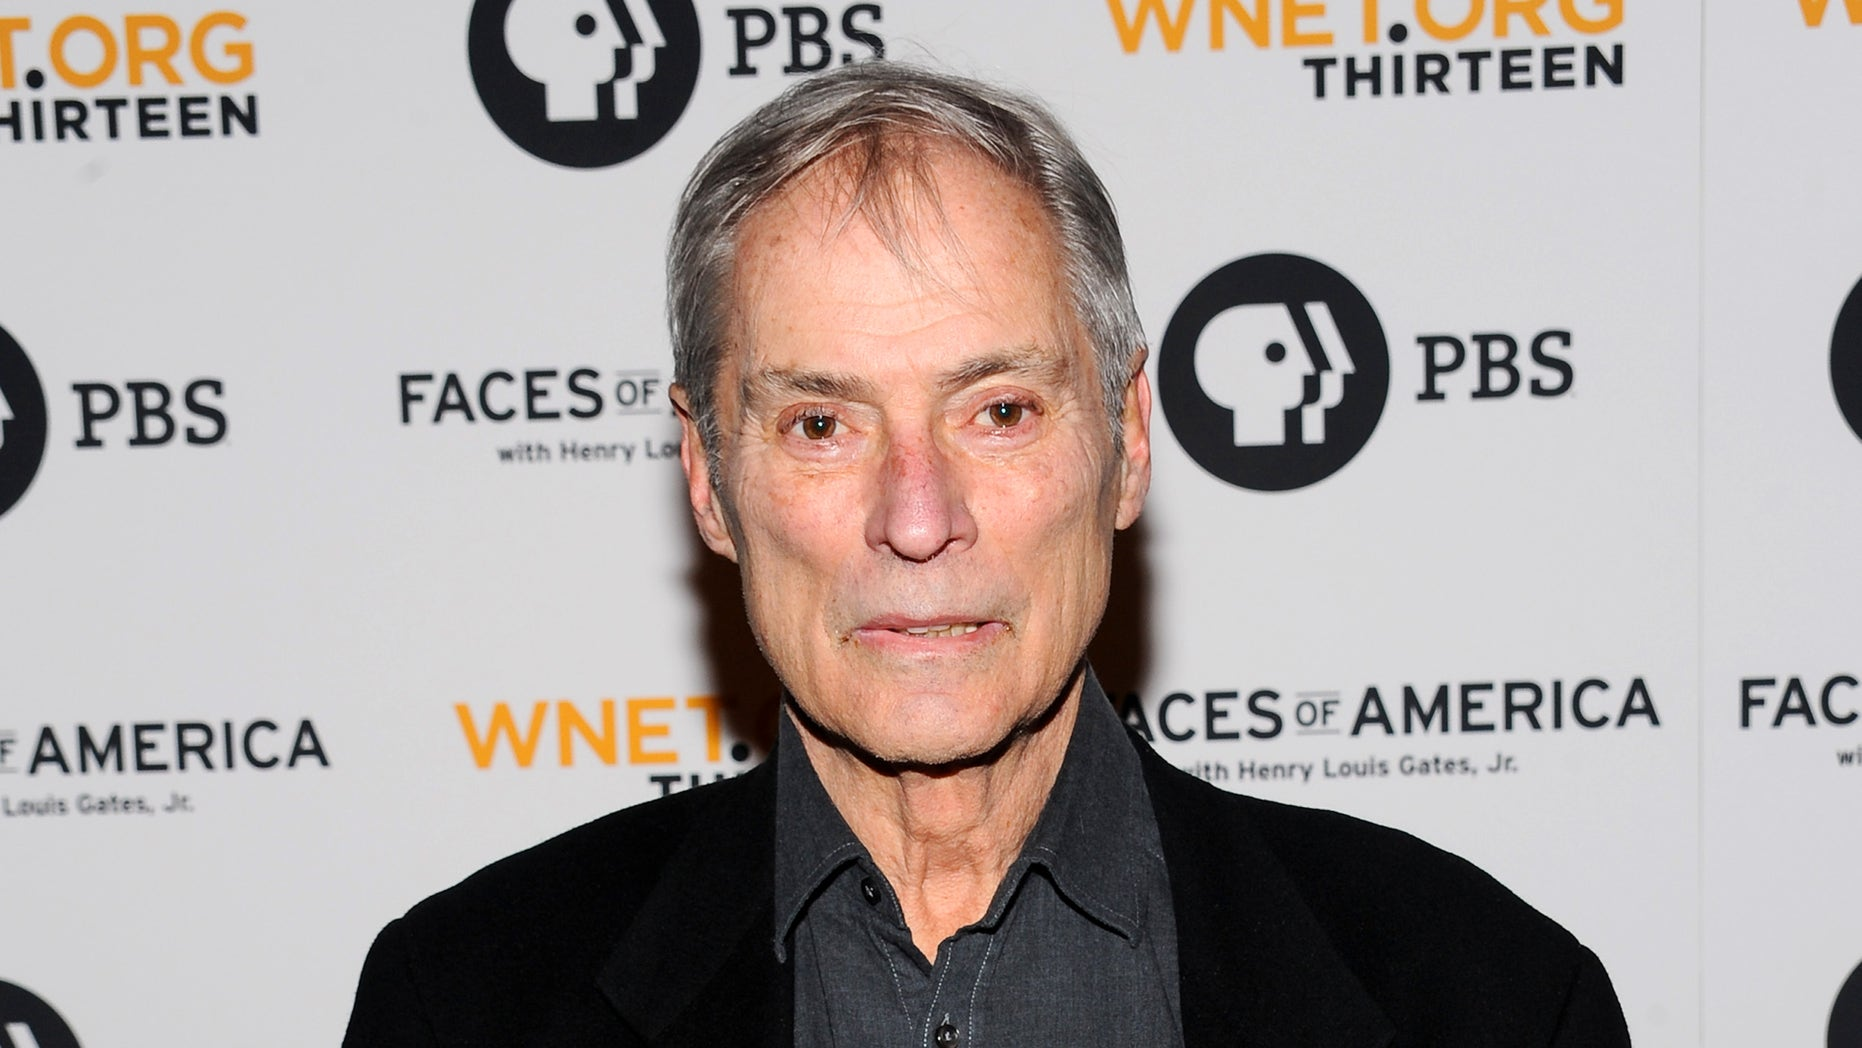 """Feb, 1, 2010. Bob Simon attends the premiere screening of  """"Faces of America With Dr. Henry Louis Gates Jr"""" in New York."""